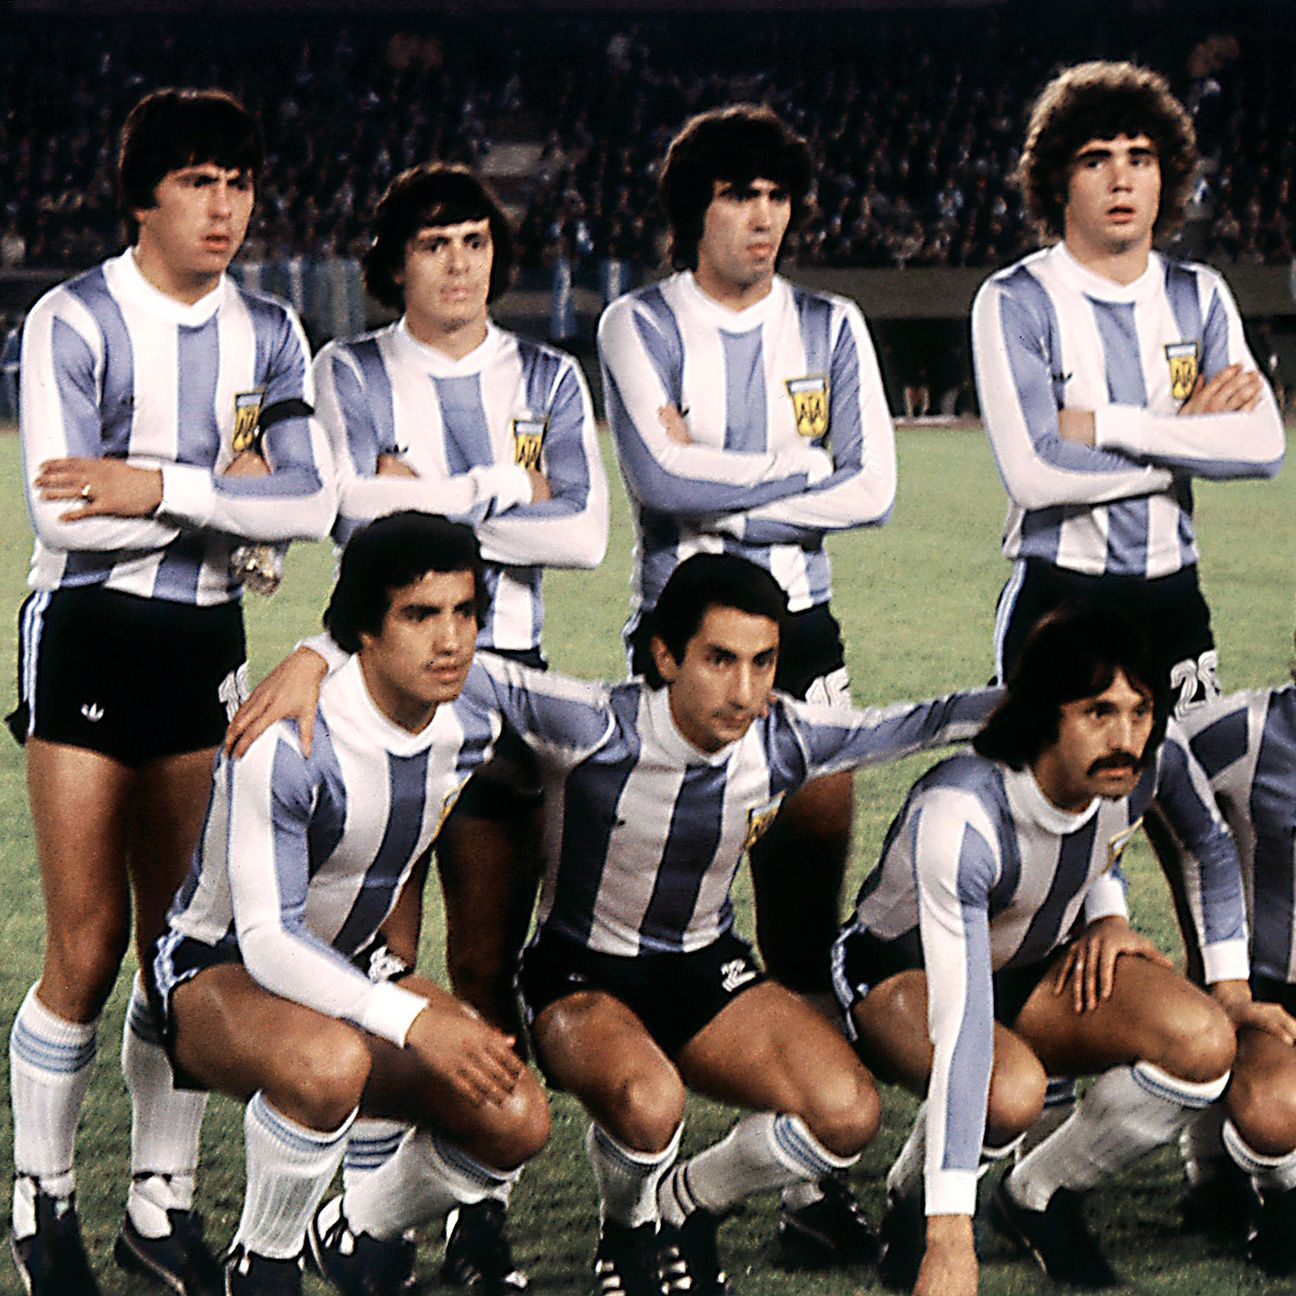 Rene Houseman, top row second from left, with the 1978 Argentina squad.